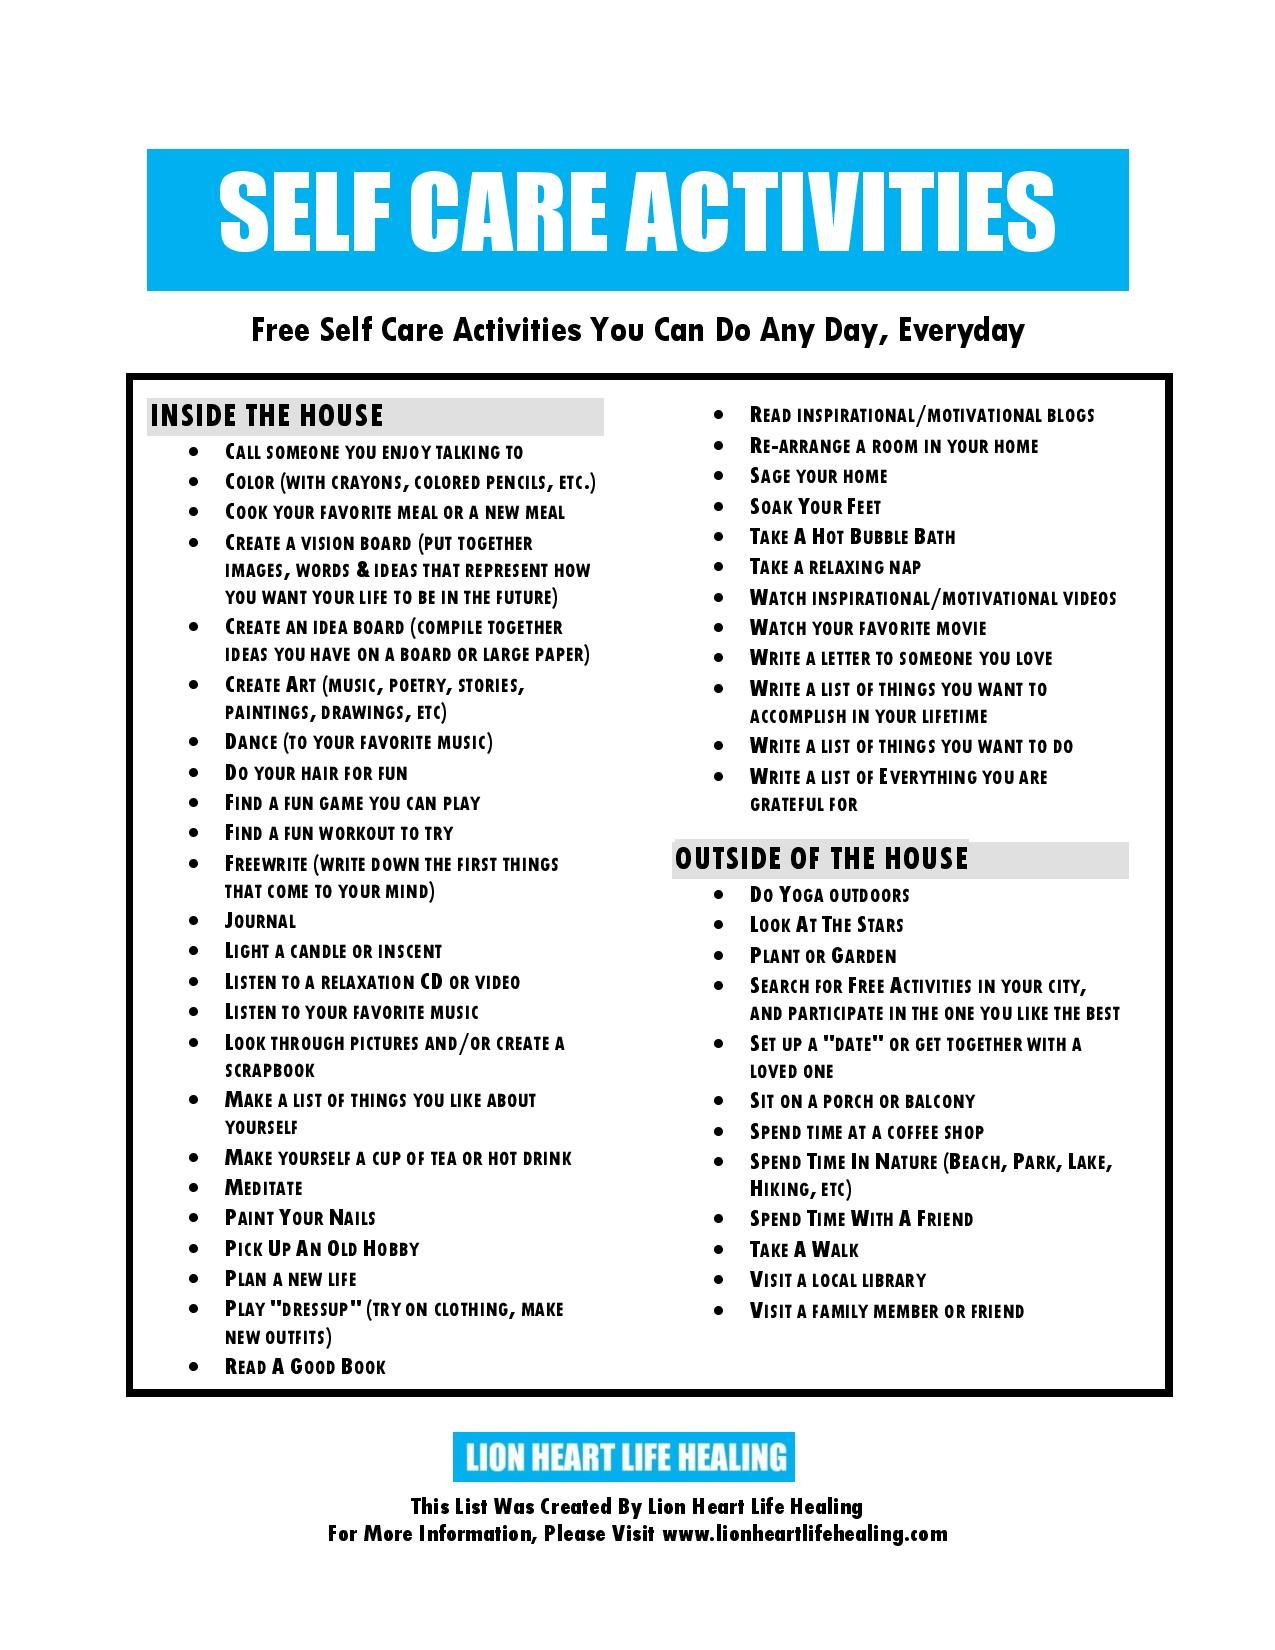 Worksheets Co-occurring Disorders Worksheets self care plan printable worksheet worksheets for school signaturebymm